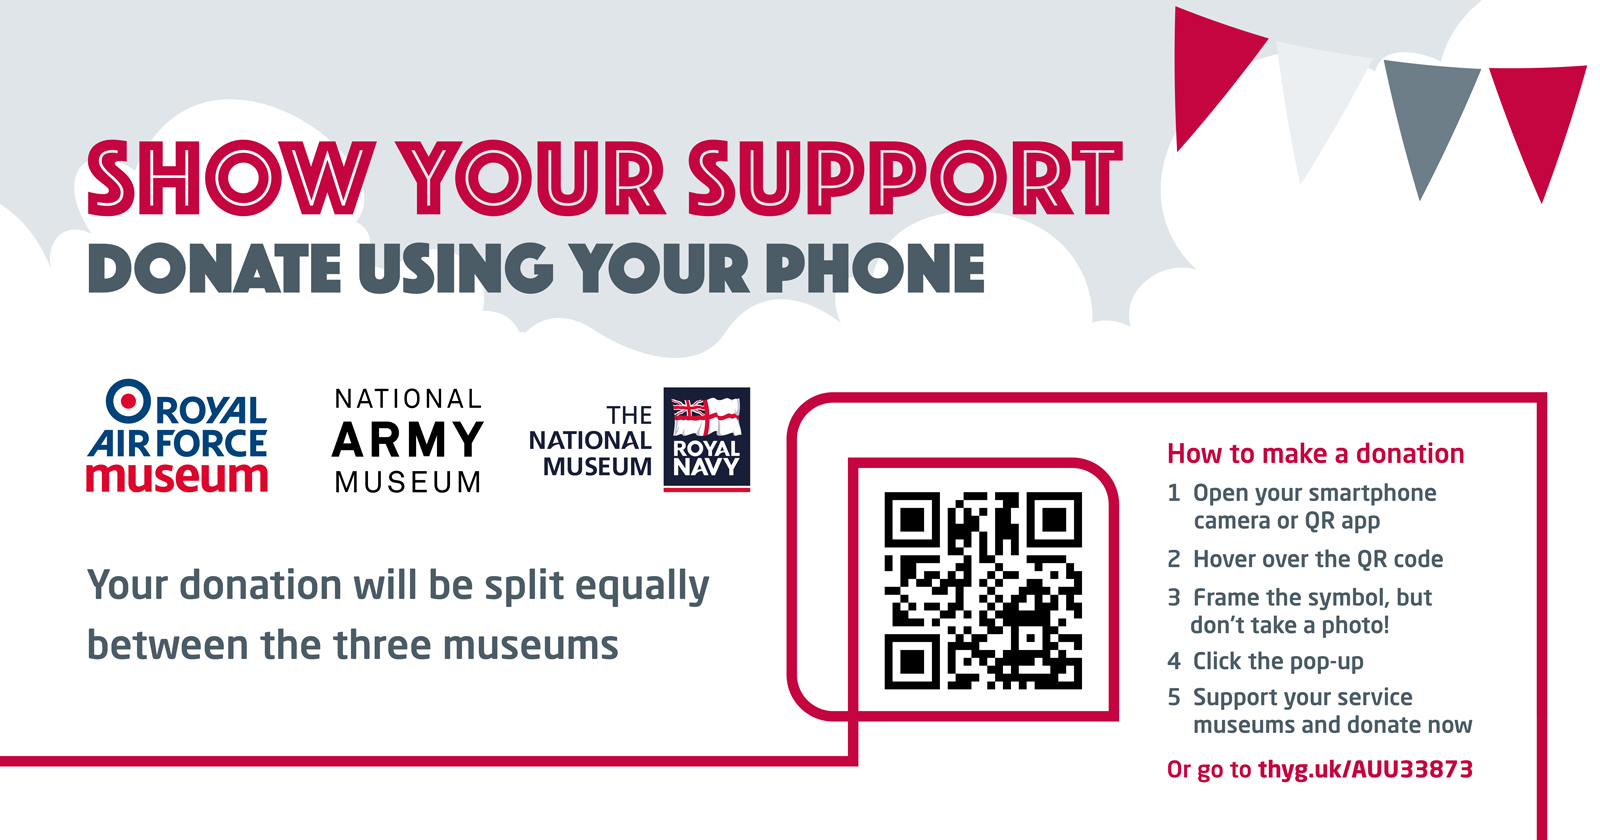 Show your support QR code